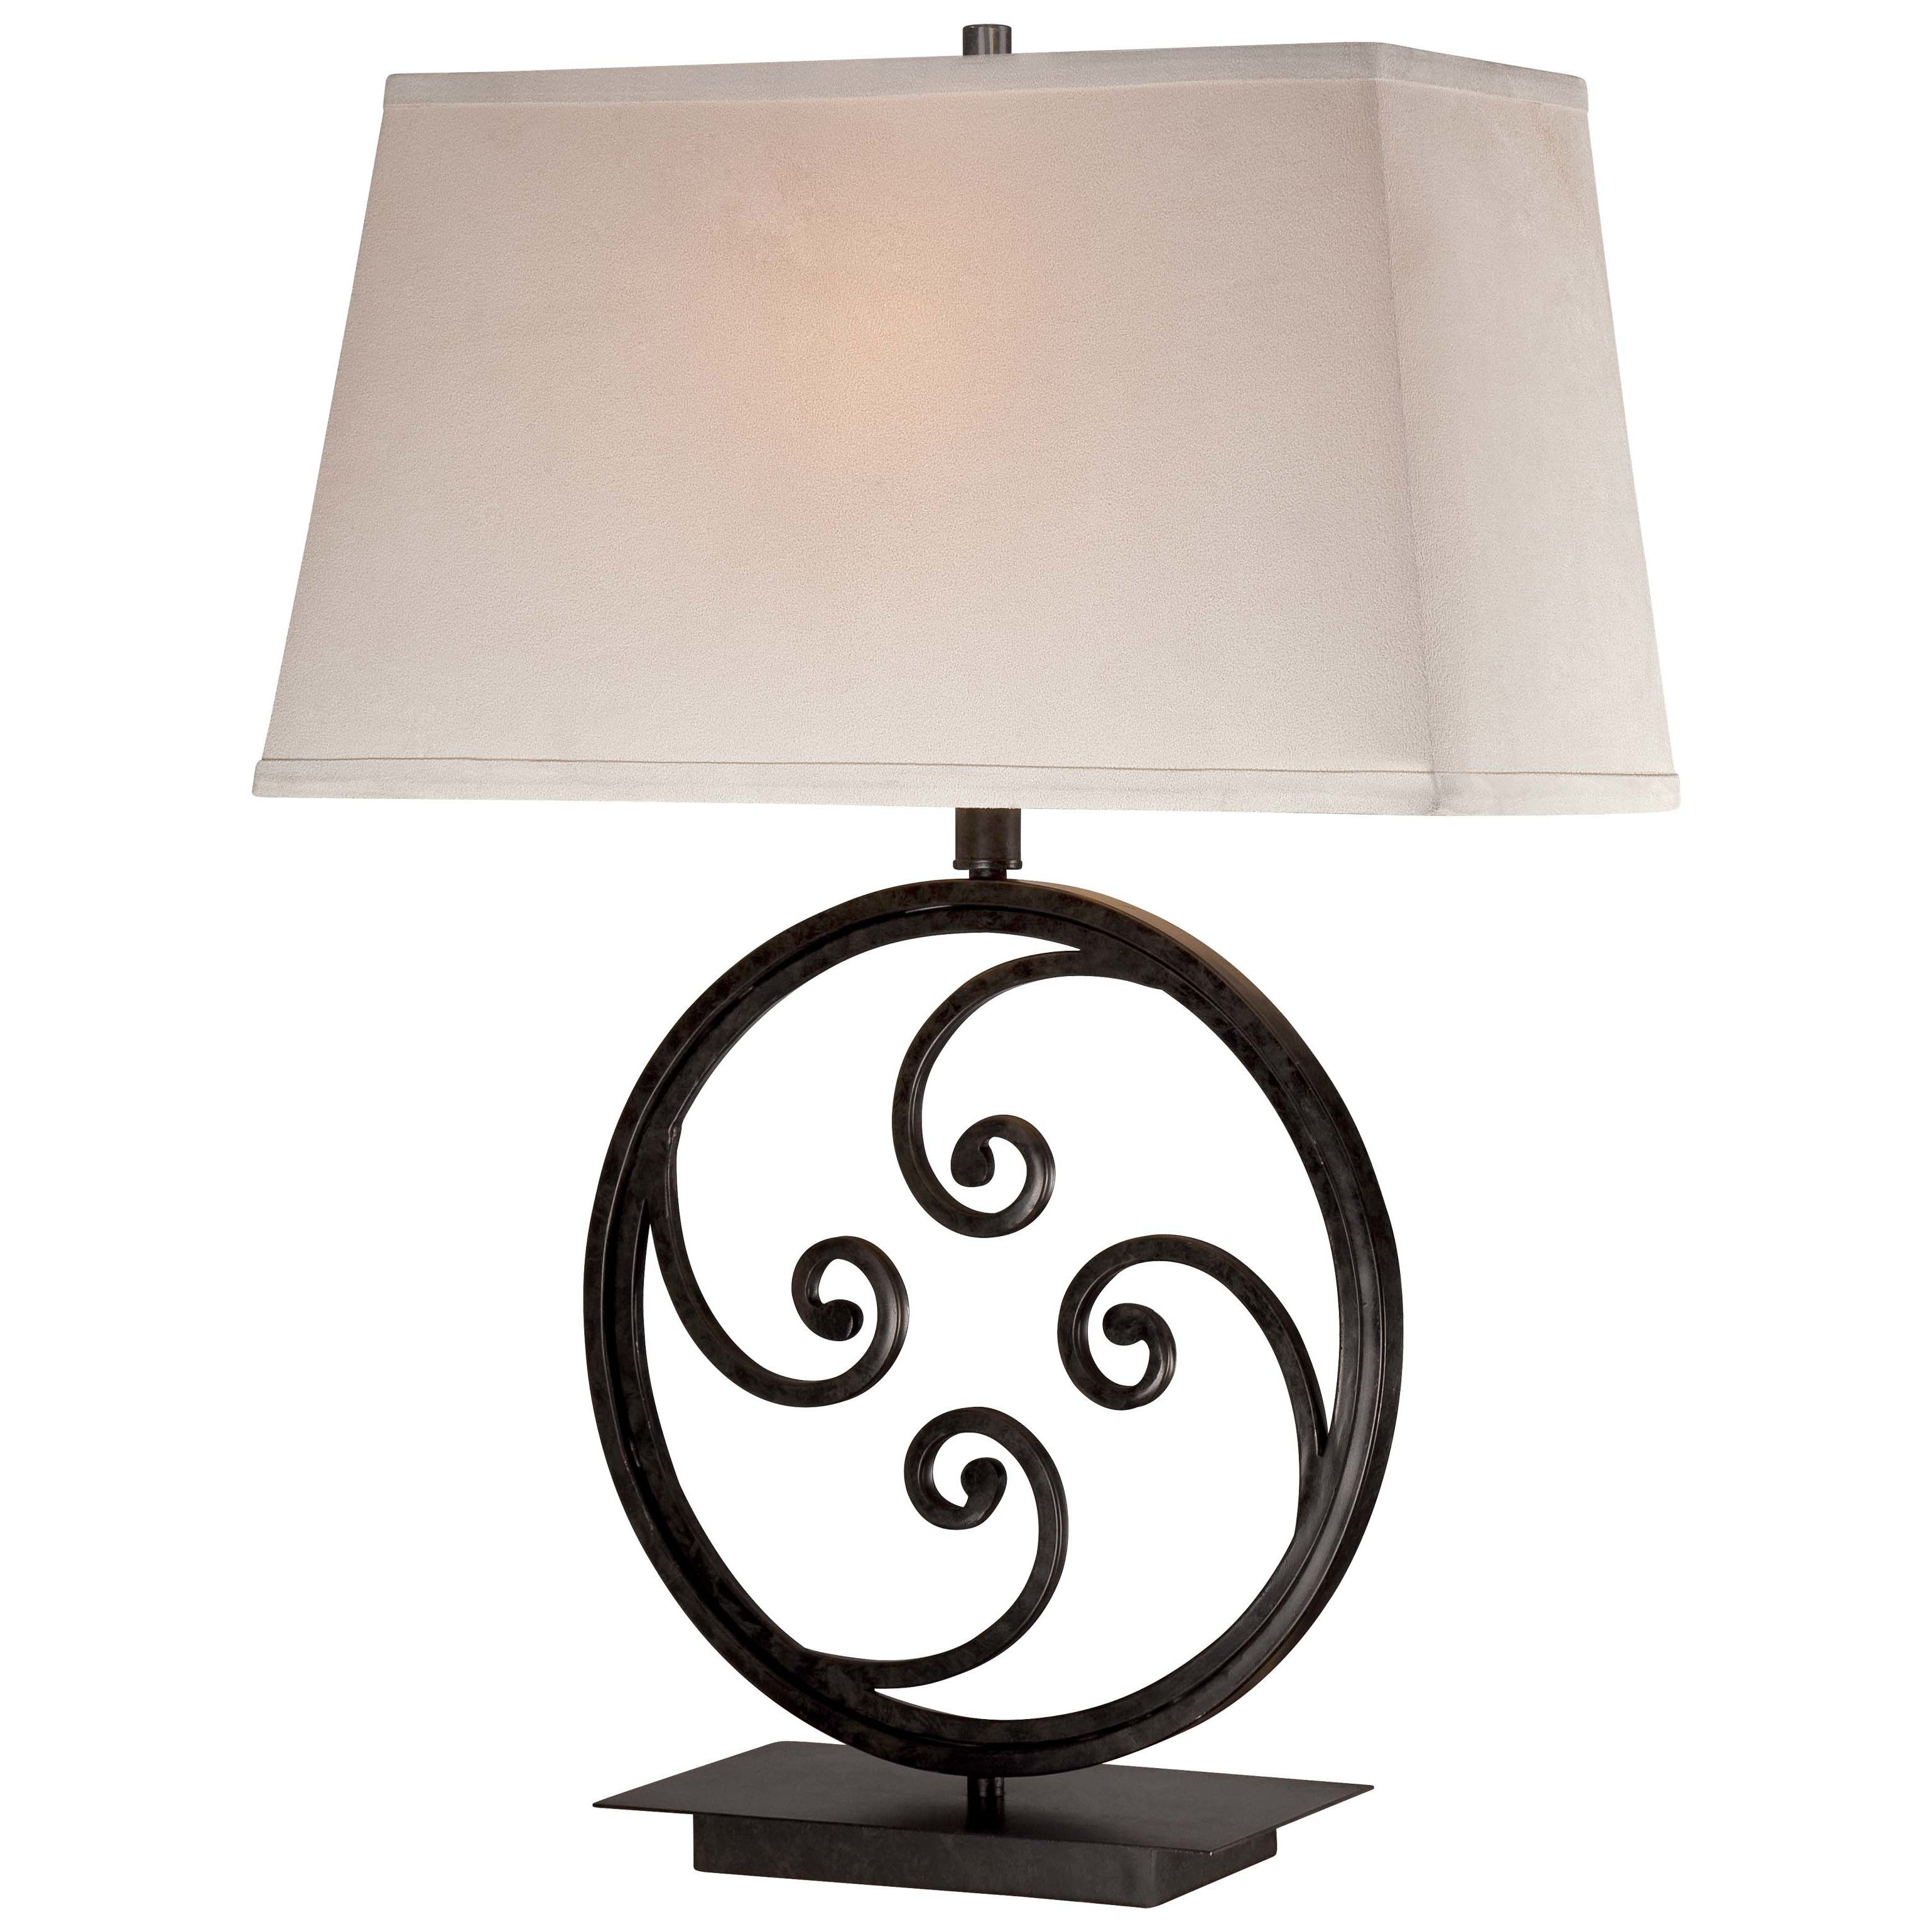 Minka lavery modern 1 light 275 h table lamp with rectangular minka lavery modern 1 light 275 h table lamp with rectangular shade mozeypictures Image collections